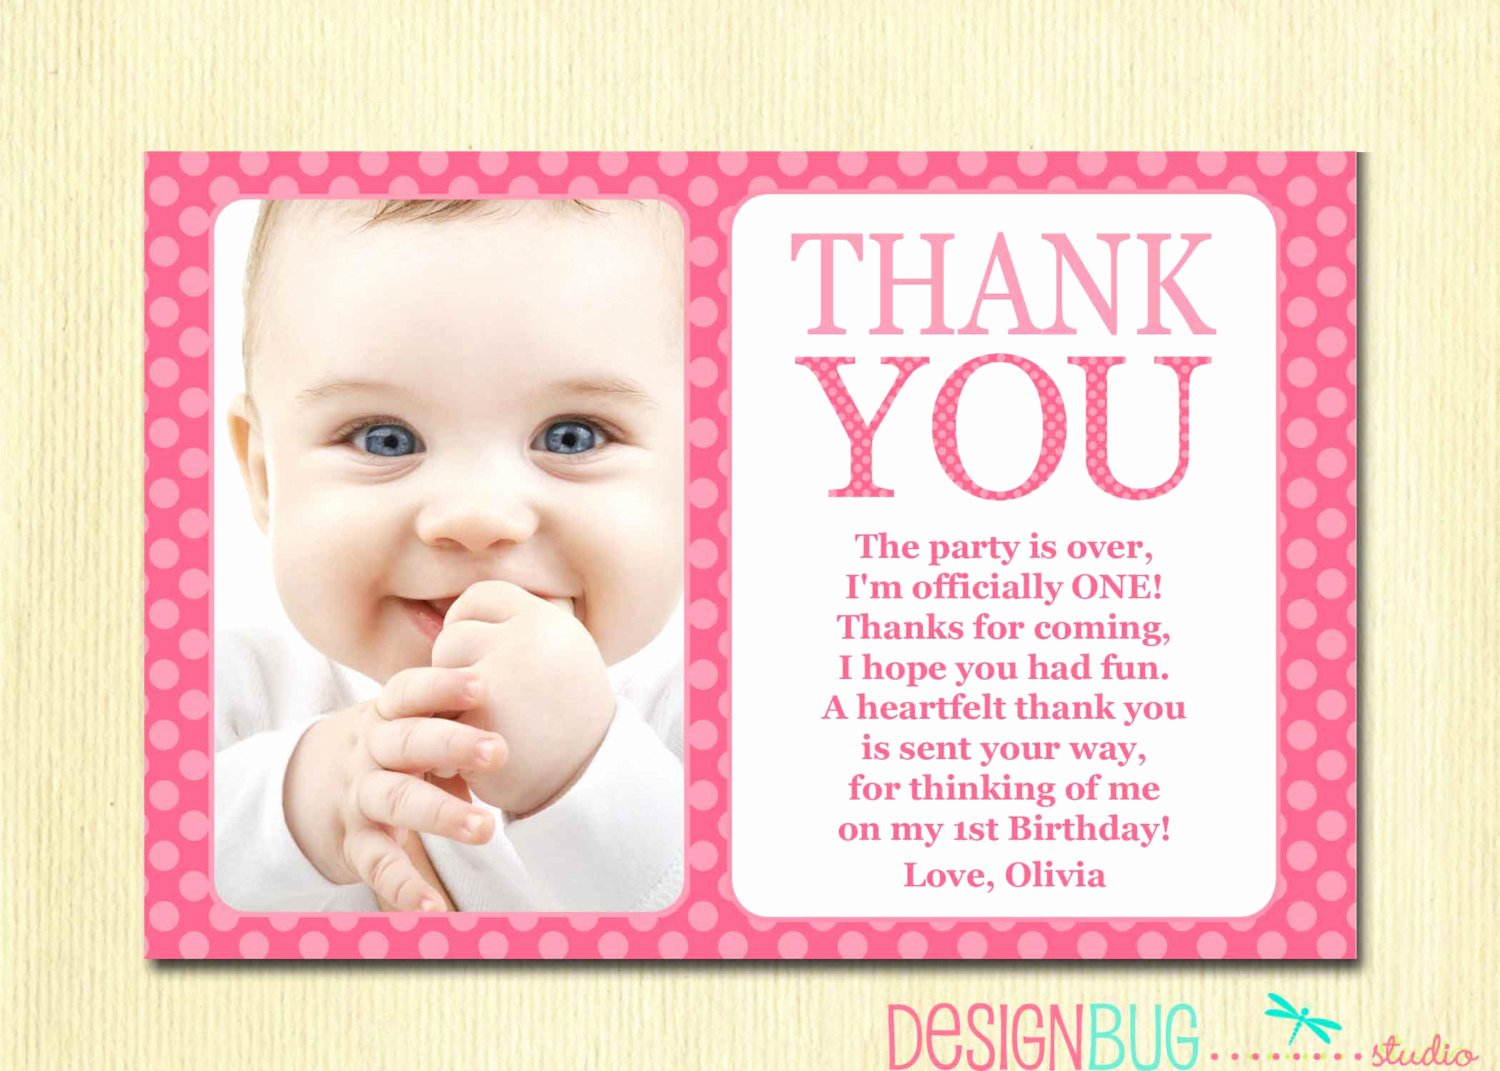 1st Birthday Thank You Cards Beautiful First Birthday Matching Thank You Card 4x6 the Big One Diy